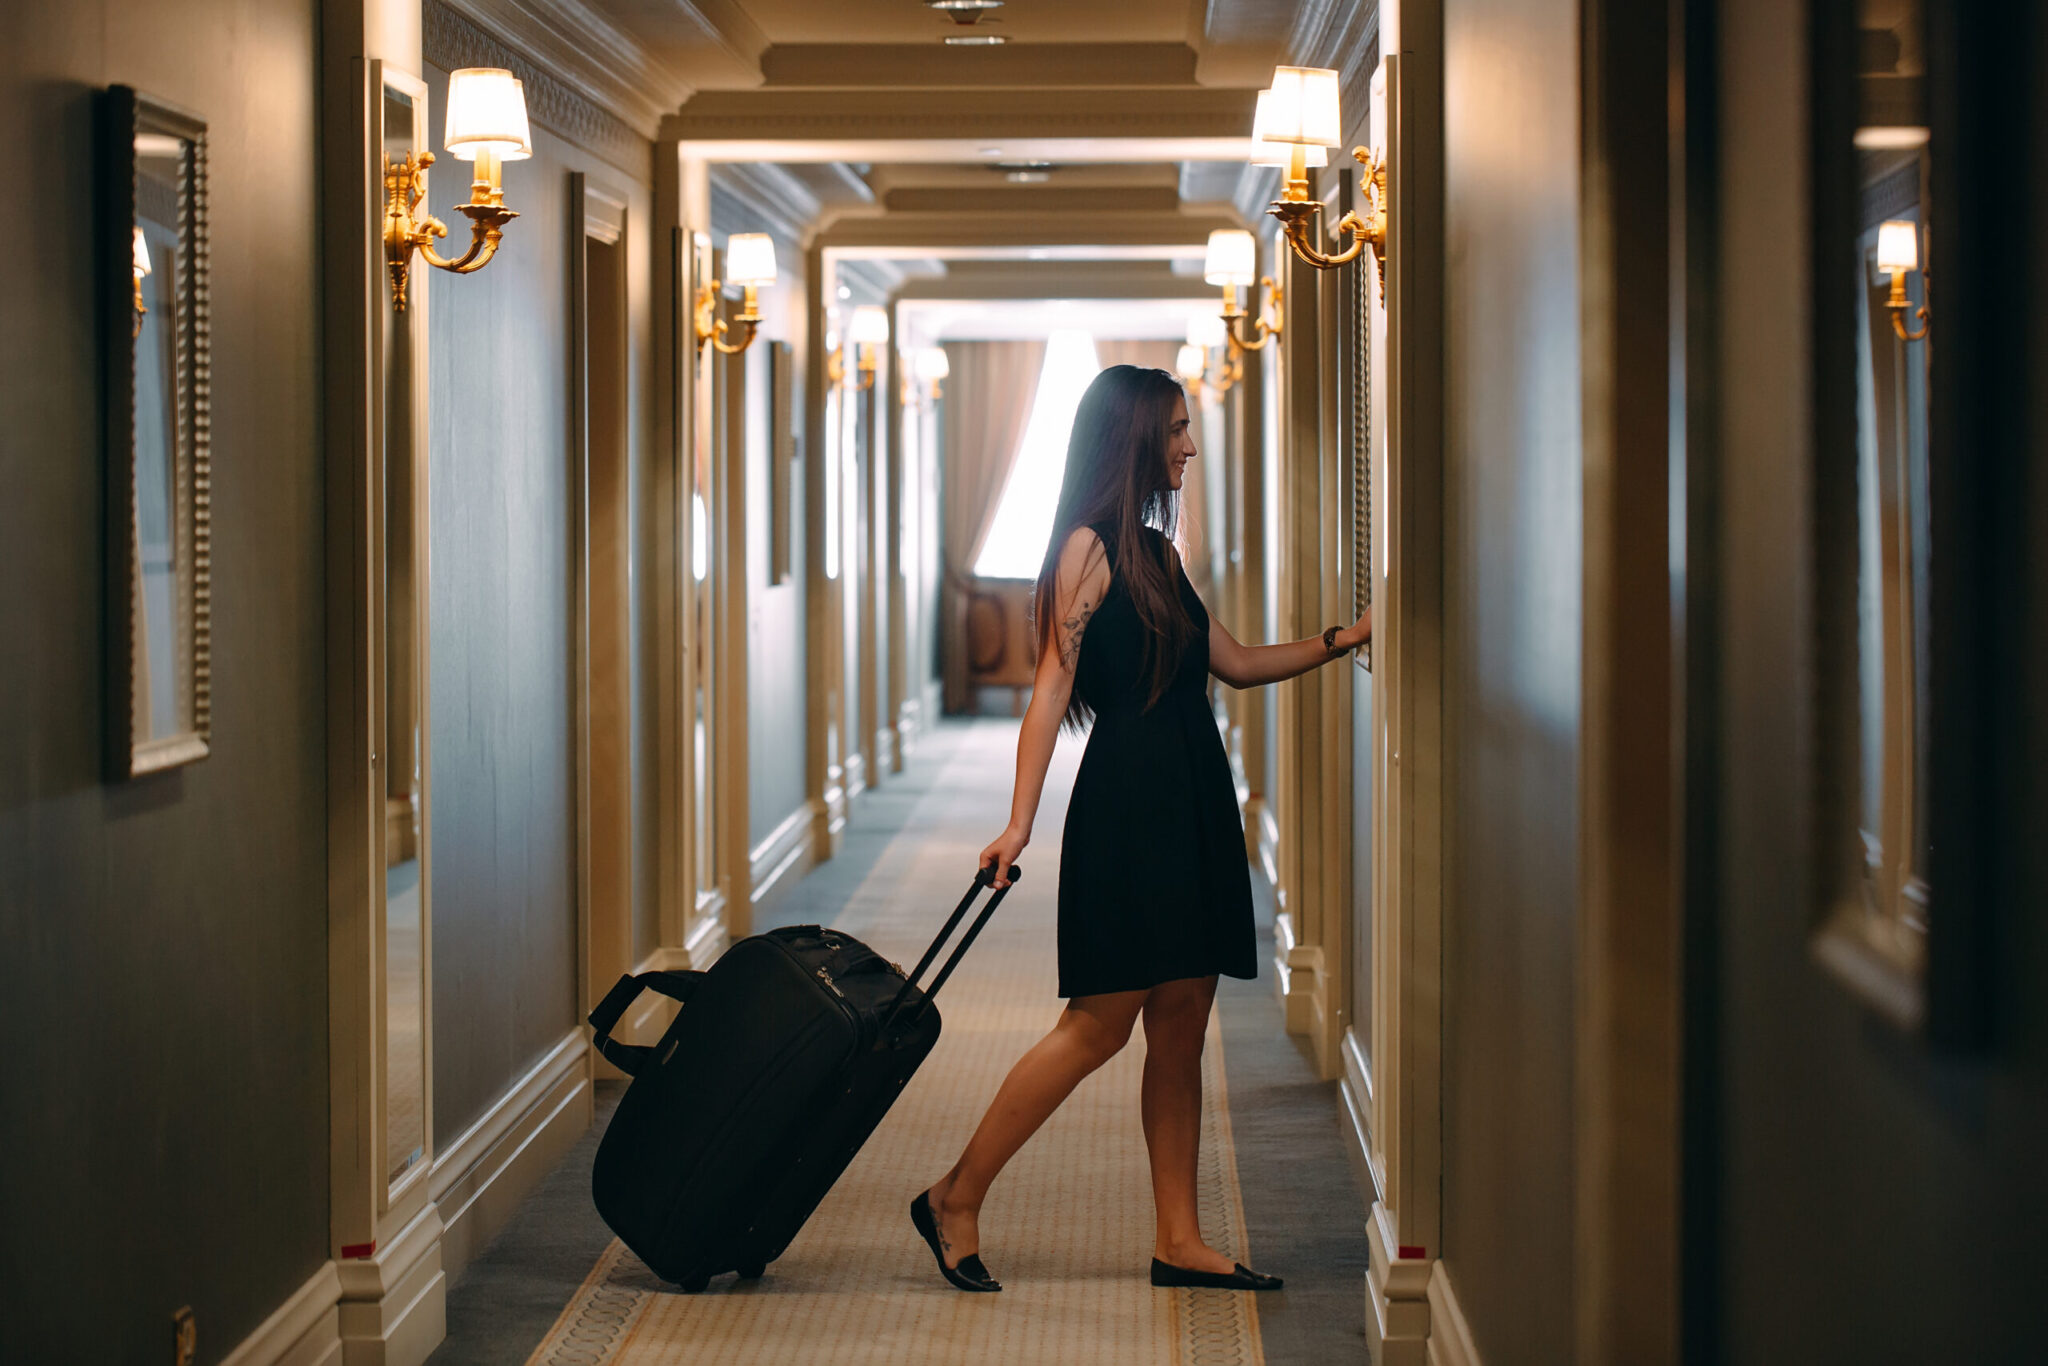 Guest with suitcase enters hotel room with hotel phone system